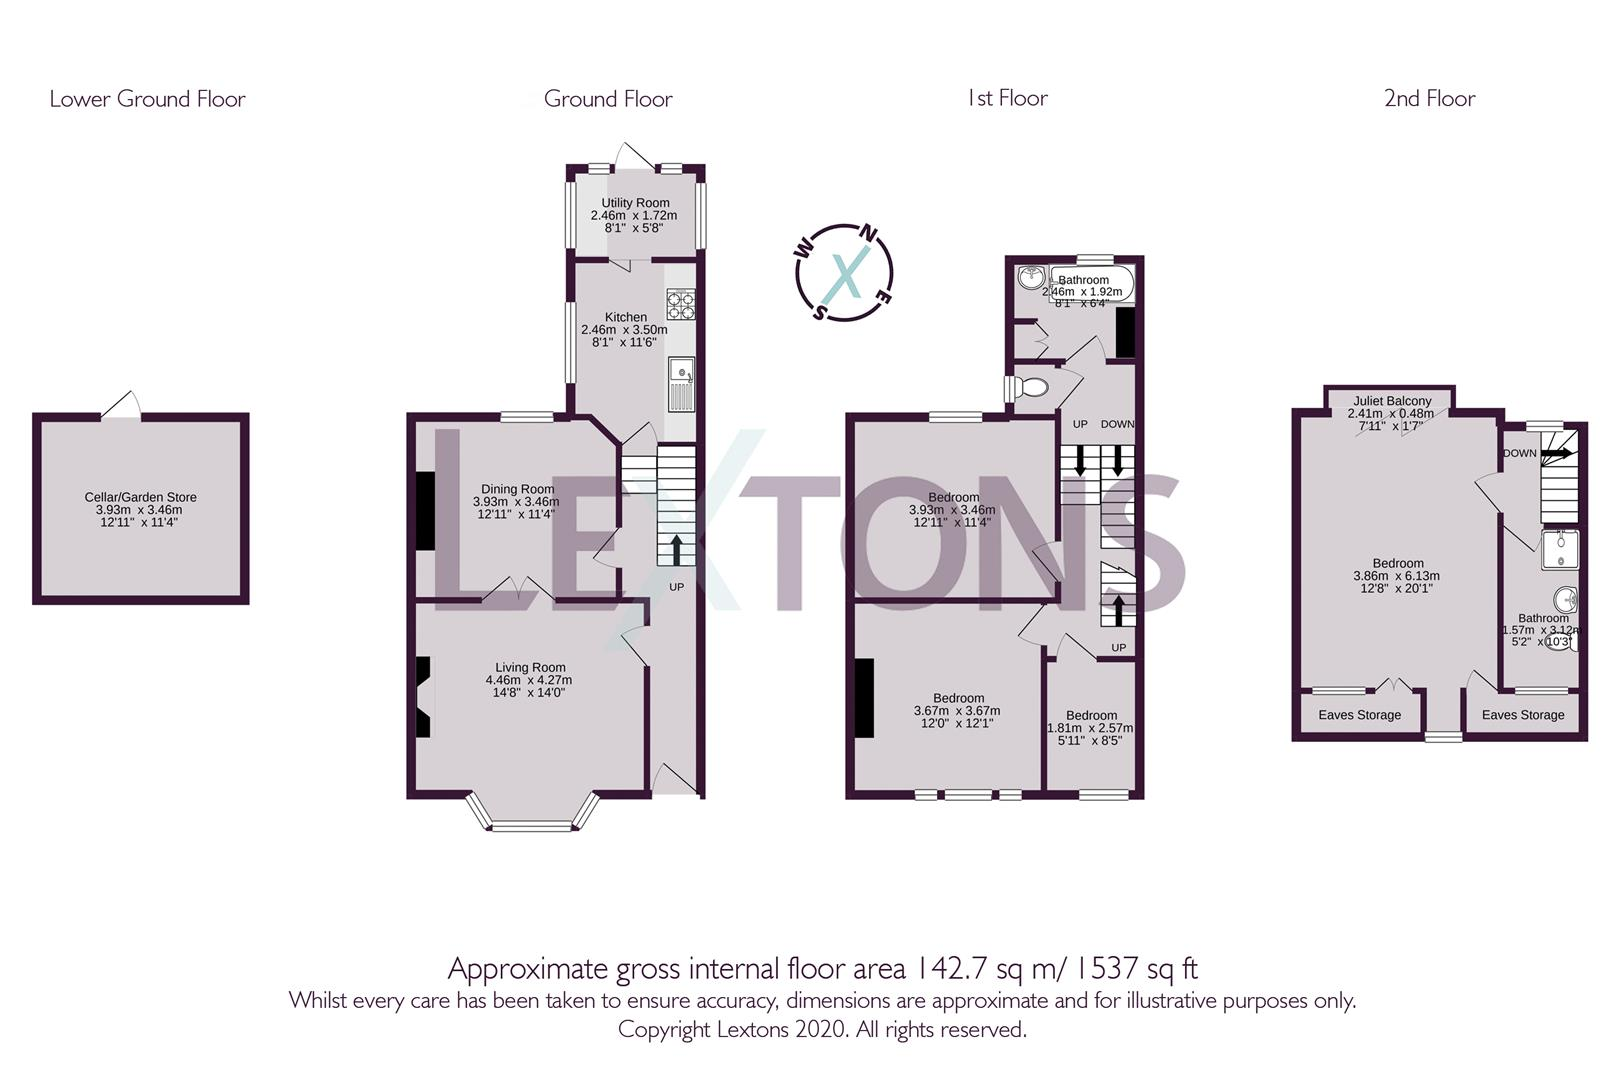 Floorplans For Upper Wellington Road, Brighton